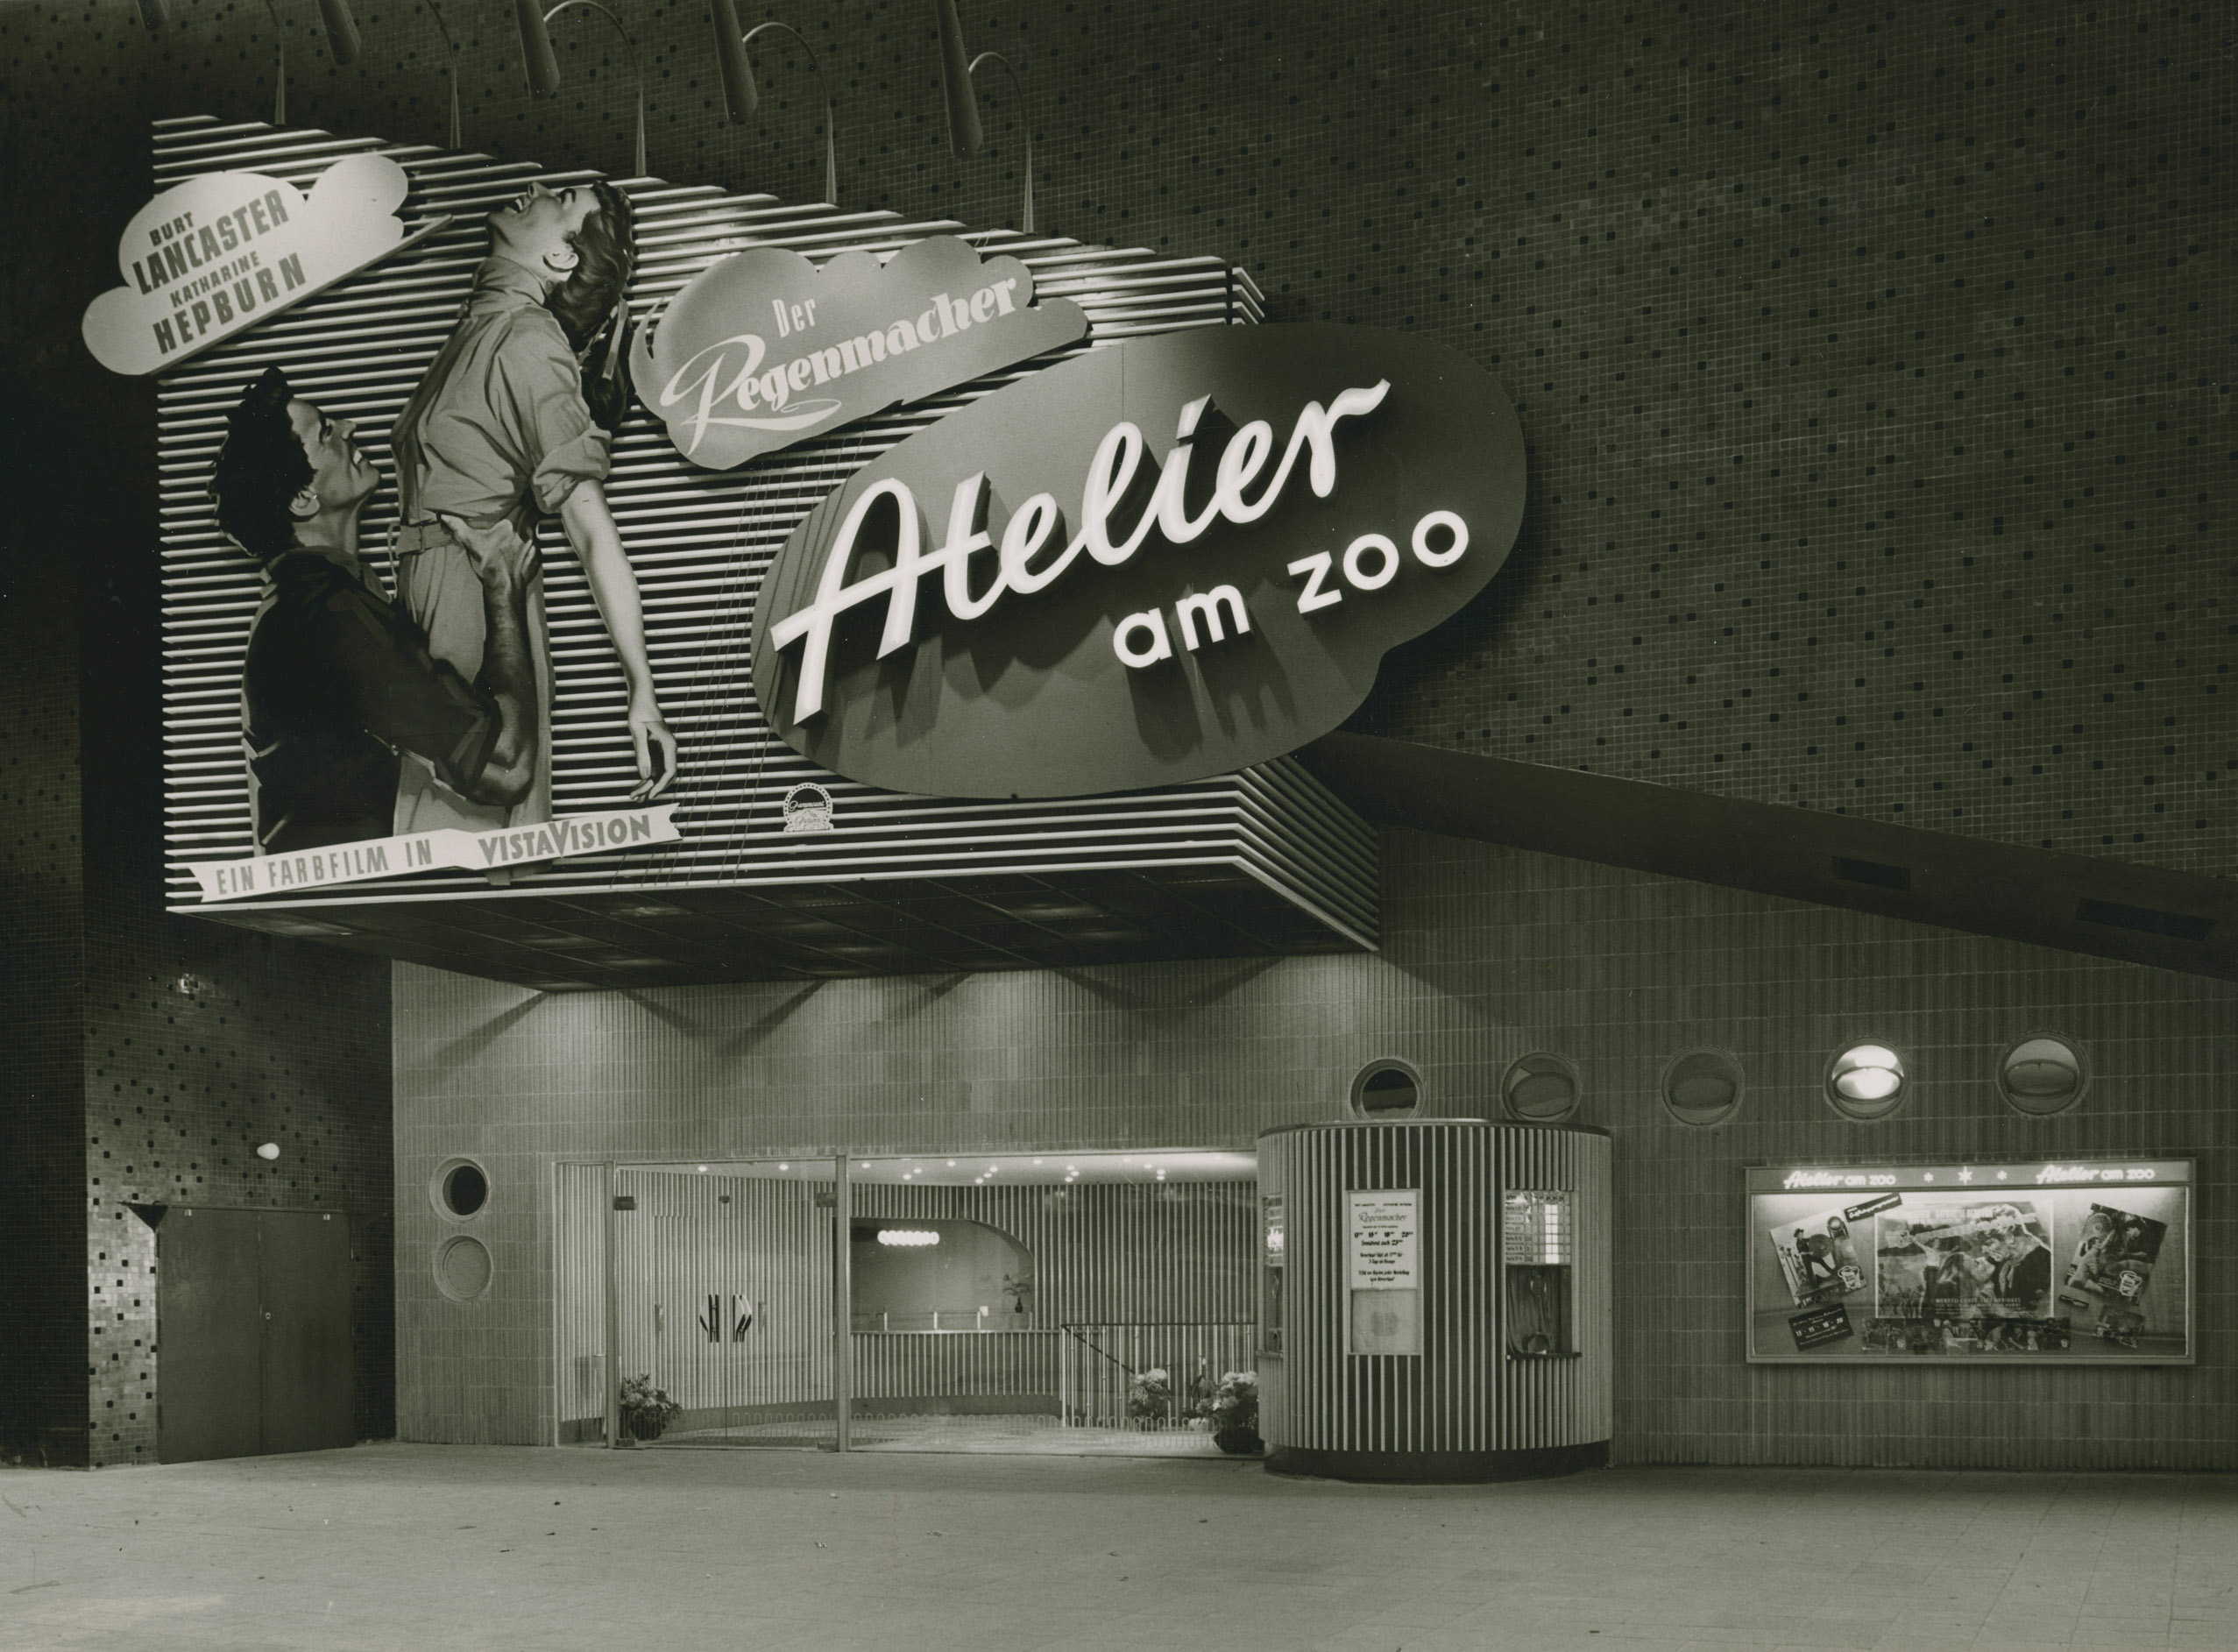 Black and white photo of the cinema façade with film advertisements